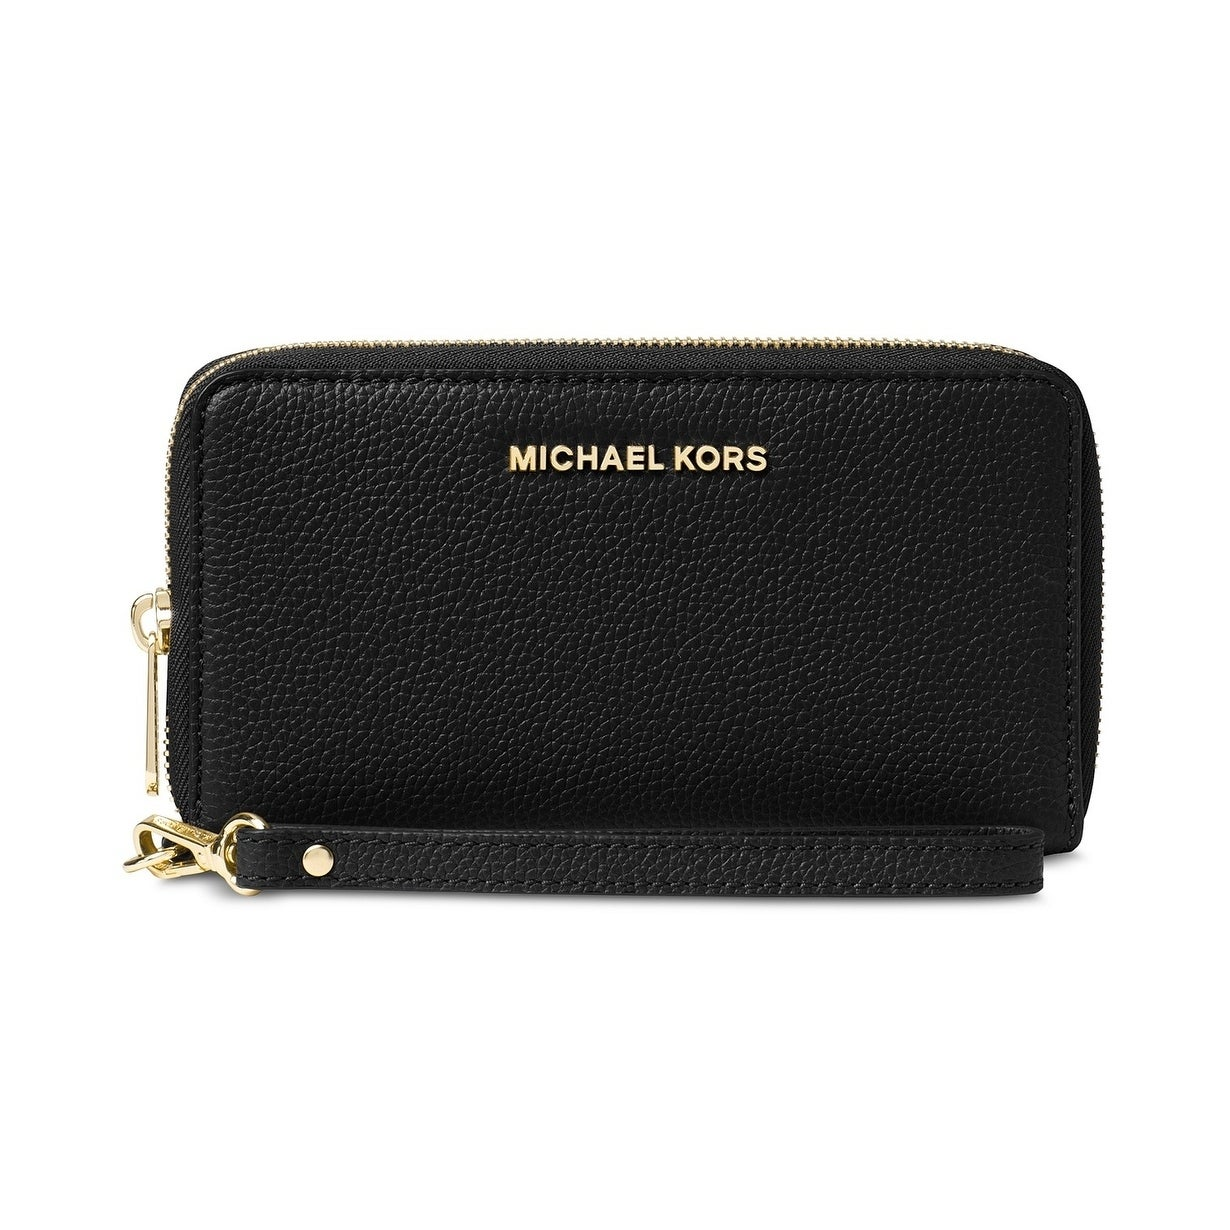 d3d49c82bc7a Shop MICHAEL Michael Kors Mercer Large Flat Multi Function Phone Case Black  - Free Shipping Today - Overstock - 21533094